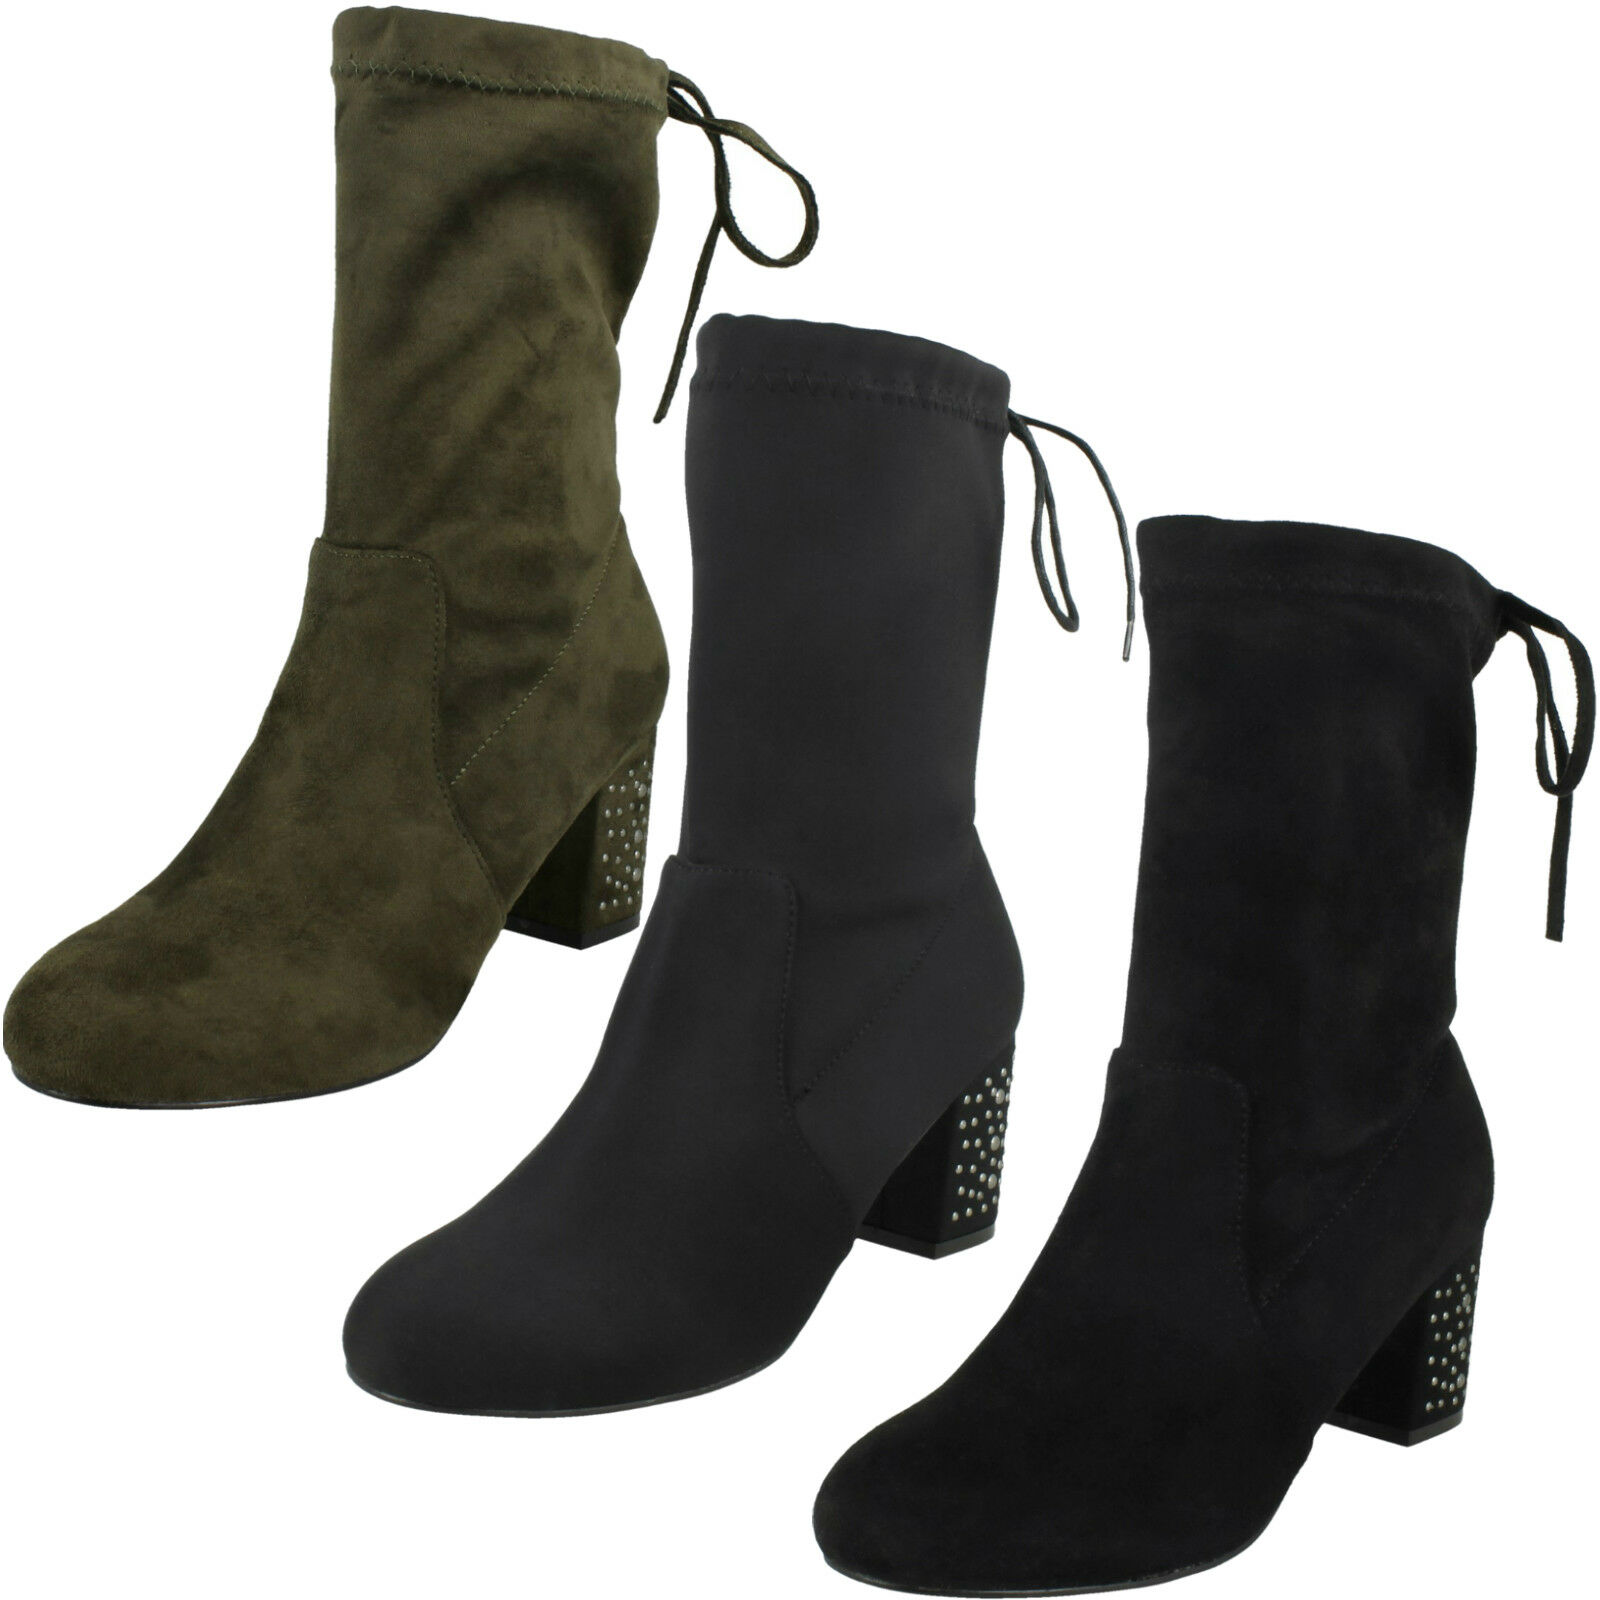 Ladies Black/Khaki Mid Calf Heeled Ankle Boots F50857